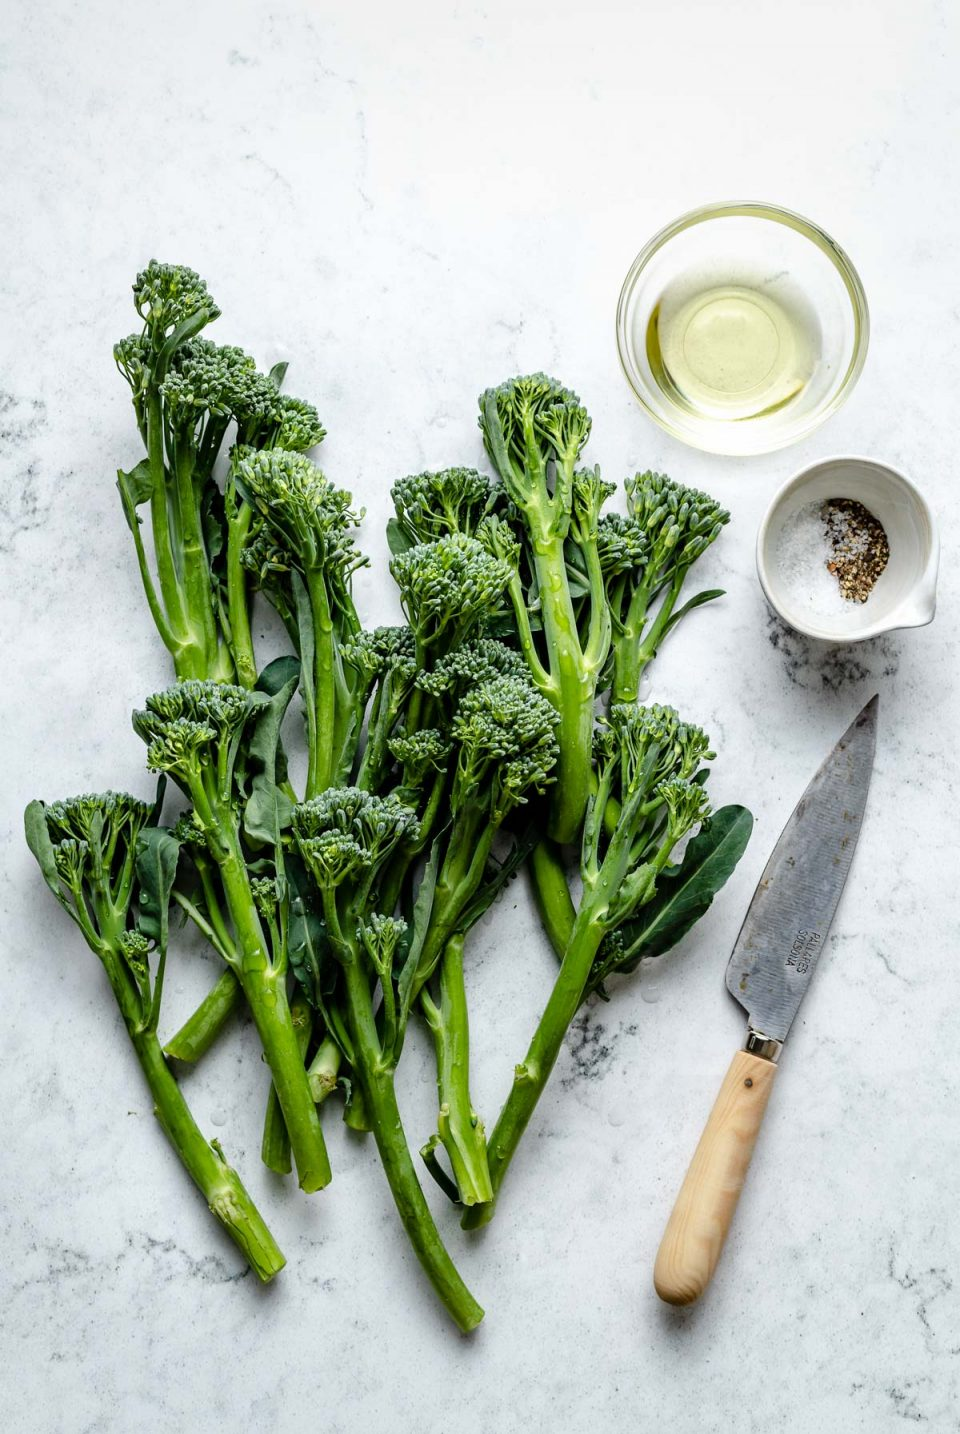 Grilled broccolini ingredients arranged on a white & grey marble surface - broccolini, avocado oil, kosher salt, & ground black pepper. A pairing knife rests on the surface next to the ingredients.